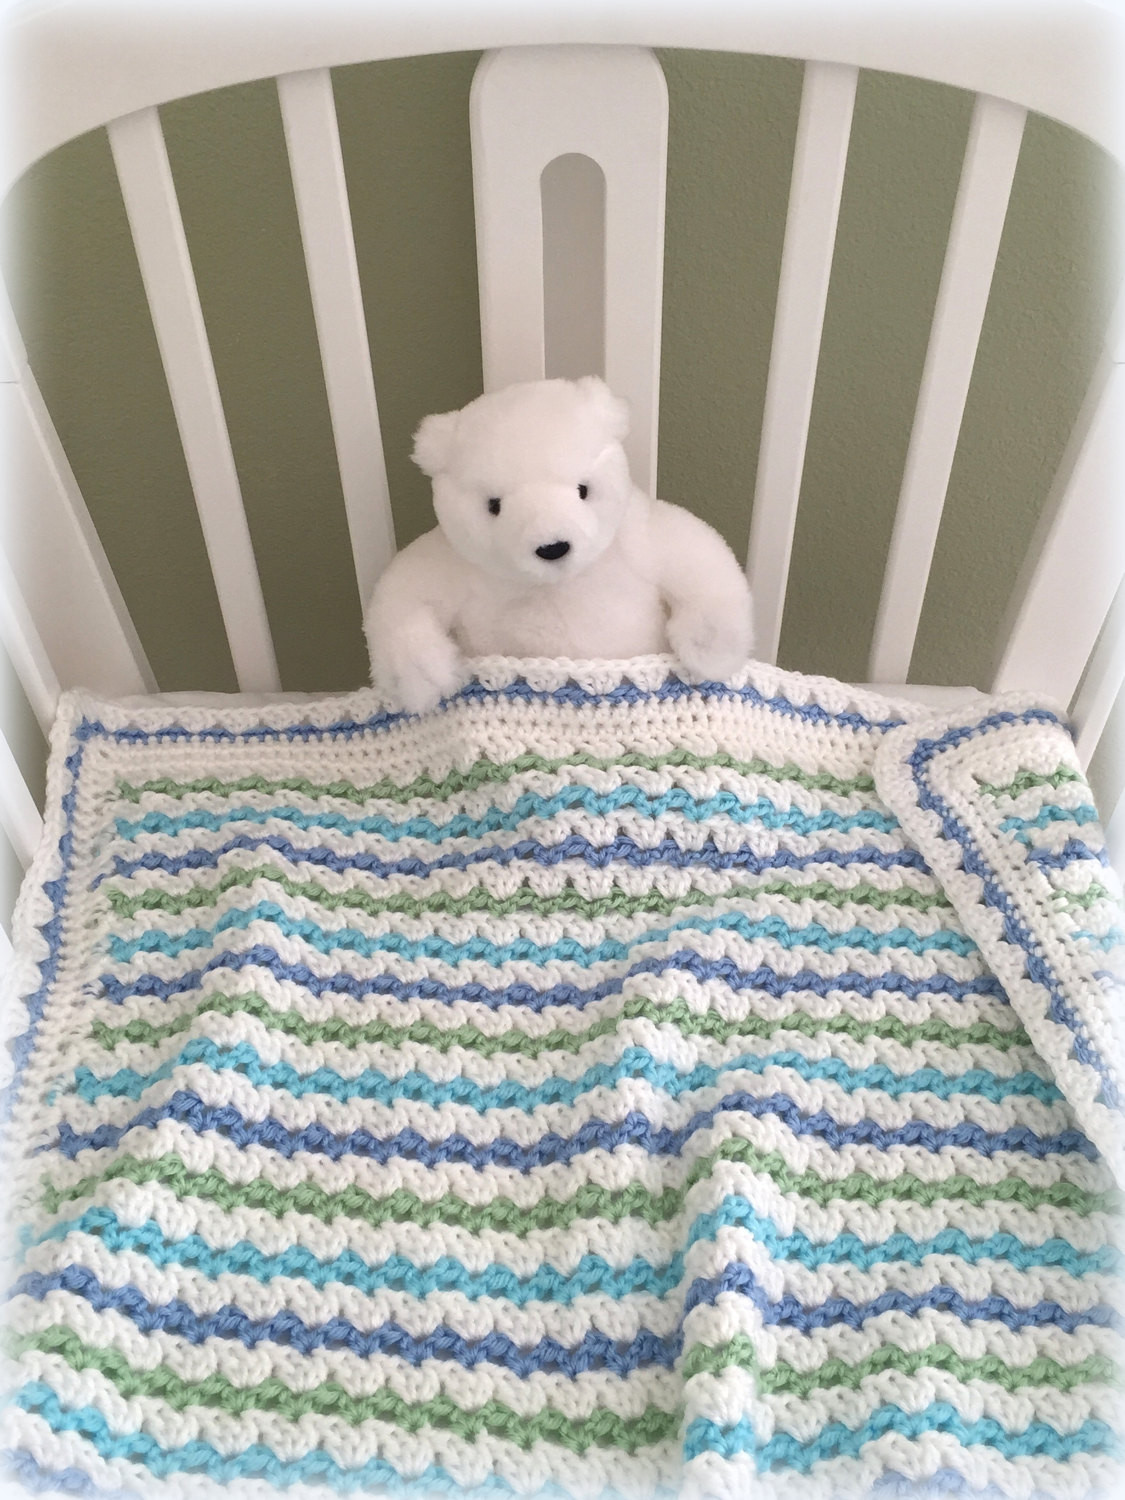 Awesome Crochet Baby Blanket Pattern Baby Blanket Pattern Easy Simple Crochet Blanket Patterns Of Awesome 40 Pictures Simple Crochet Blanket Patterns